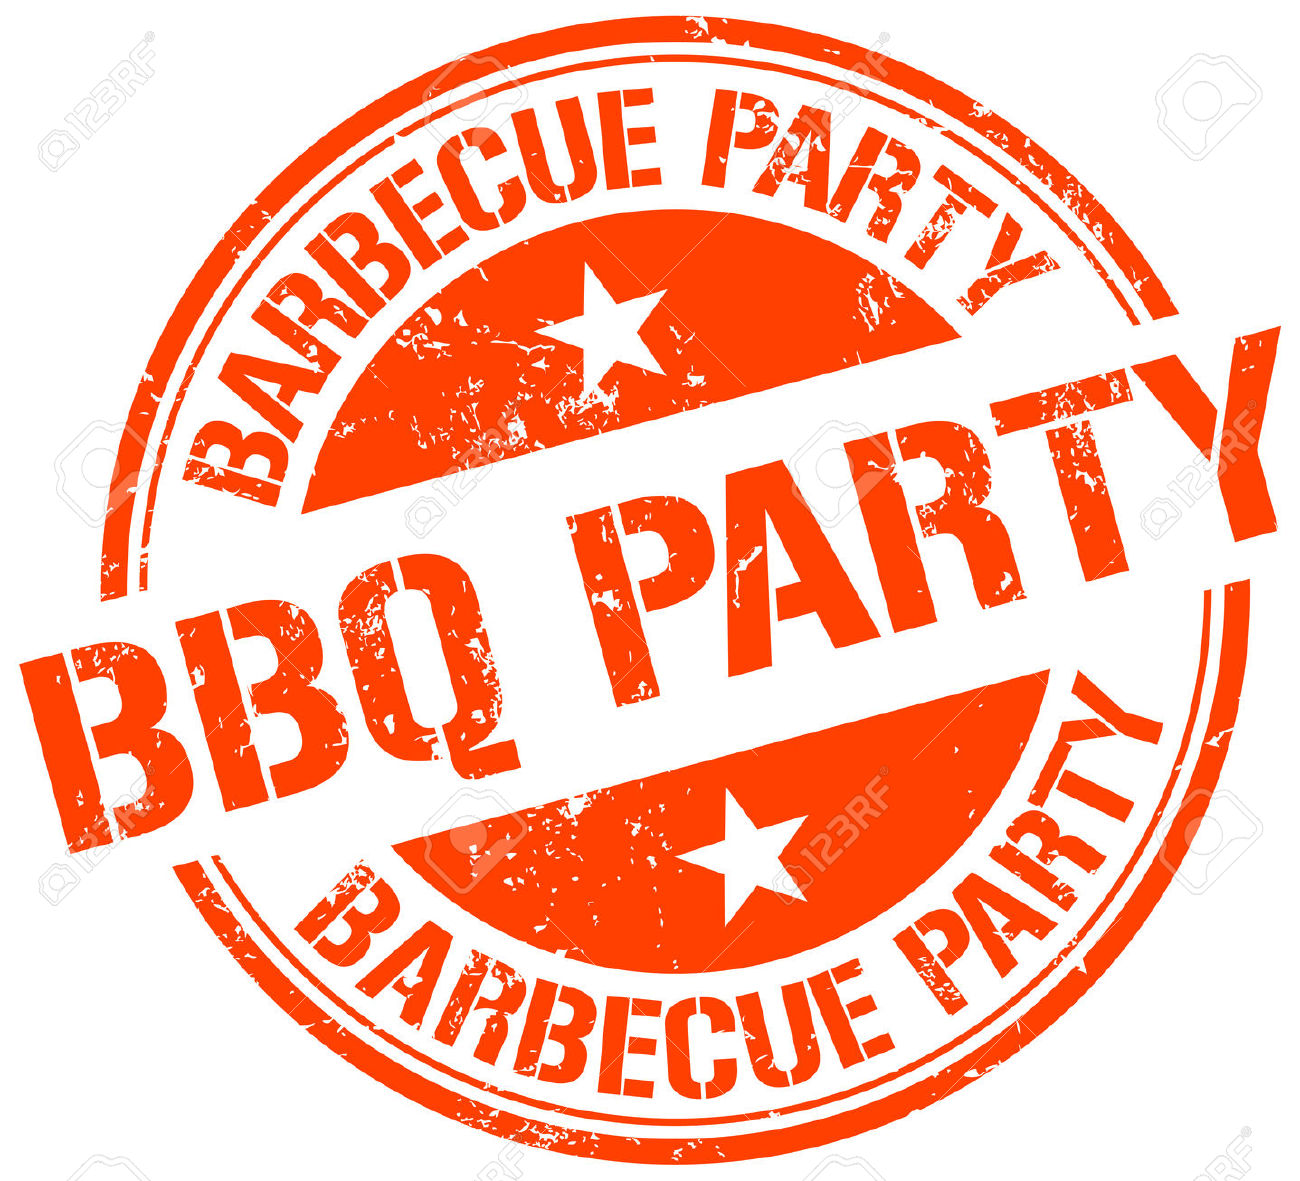 Sunrise shores poa glpc annual bbq - Idees pour barbecue party ...